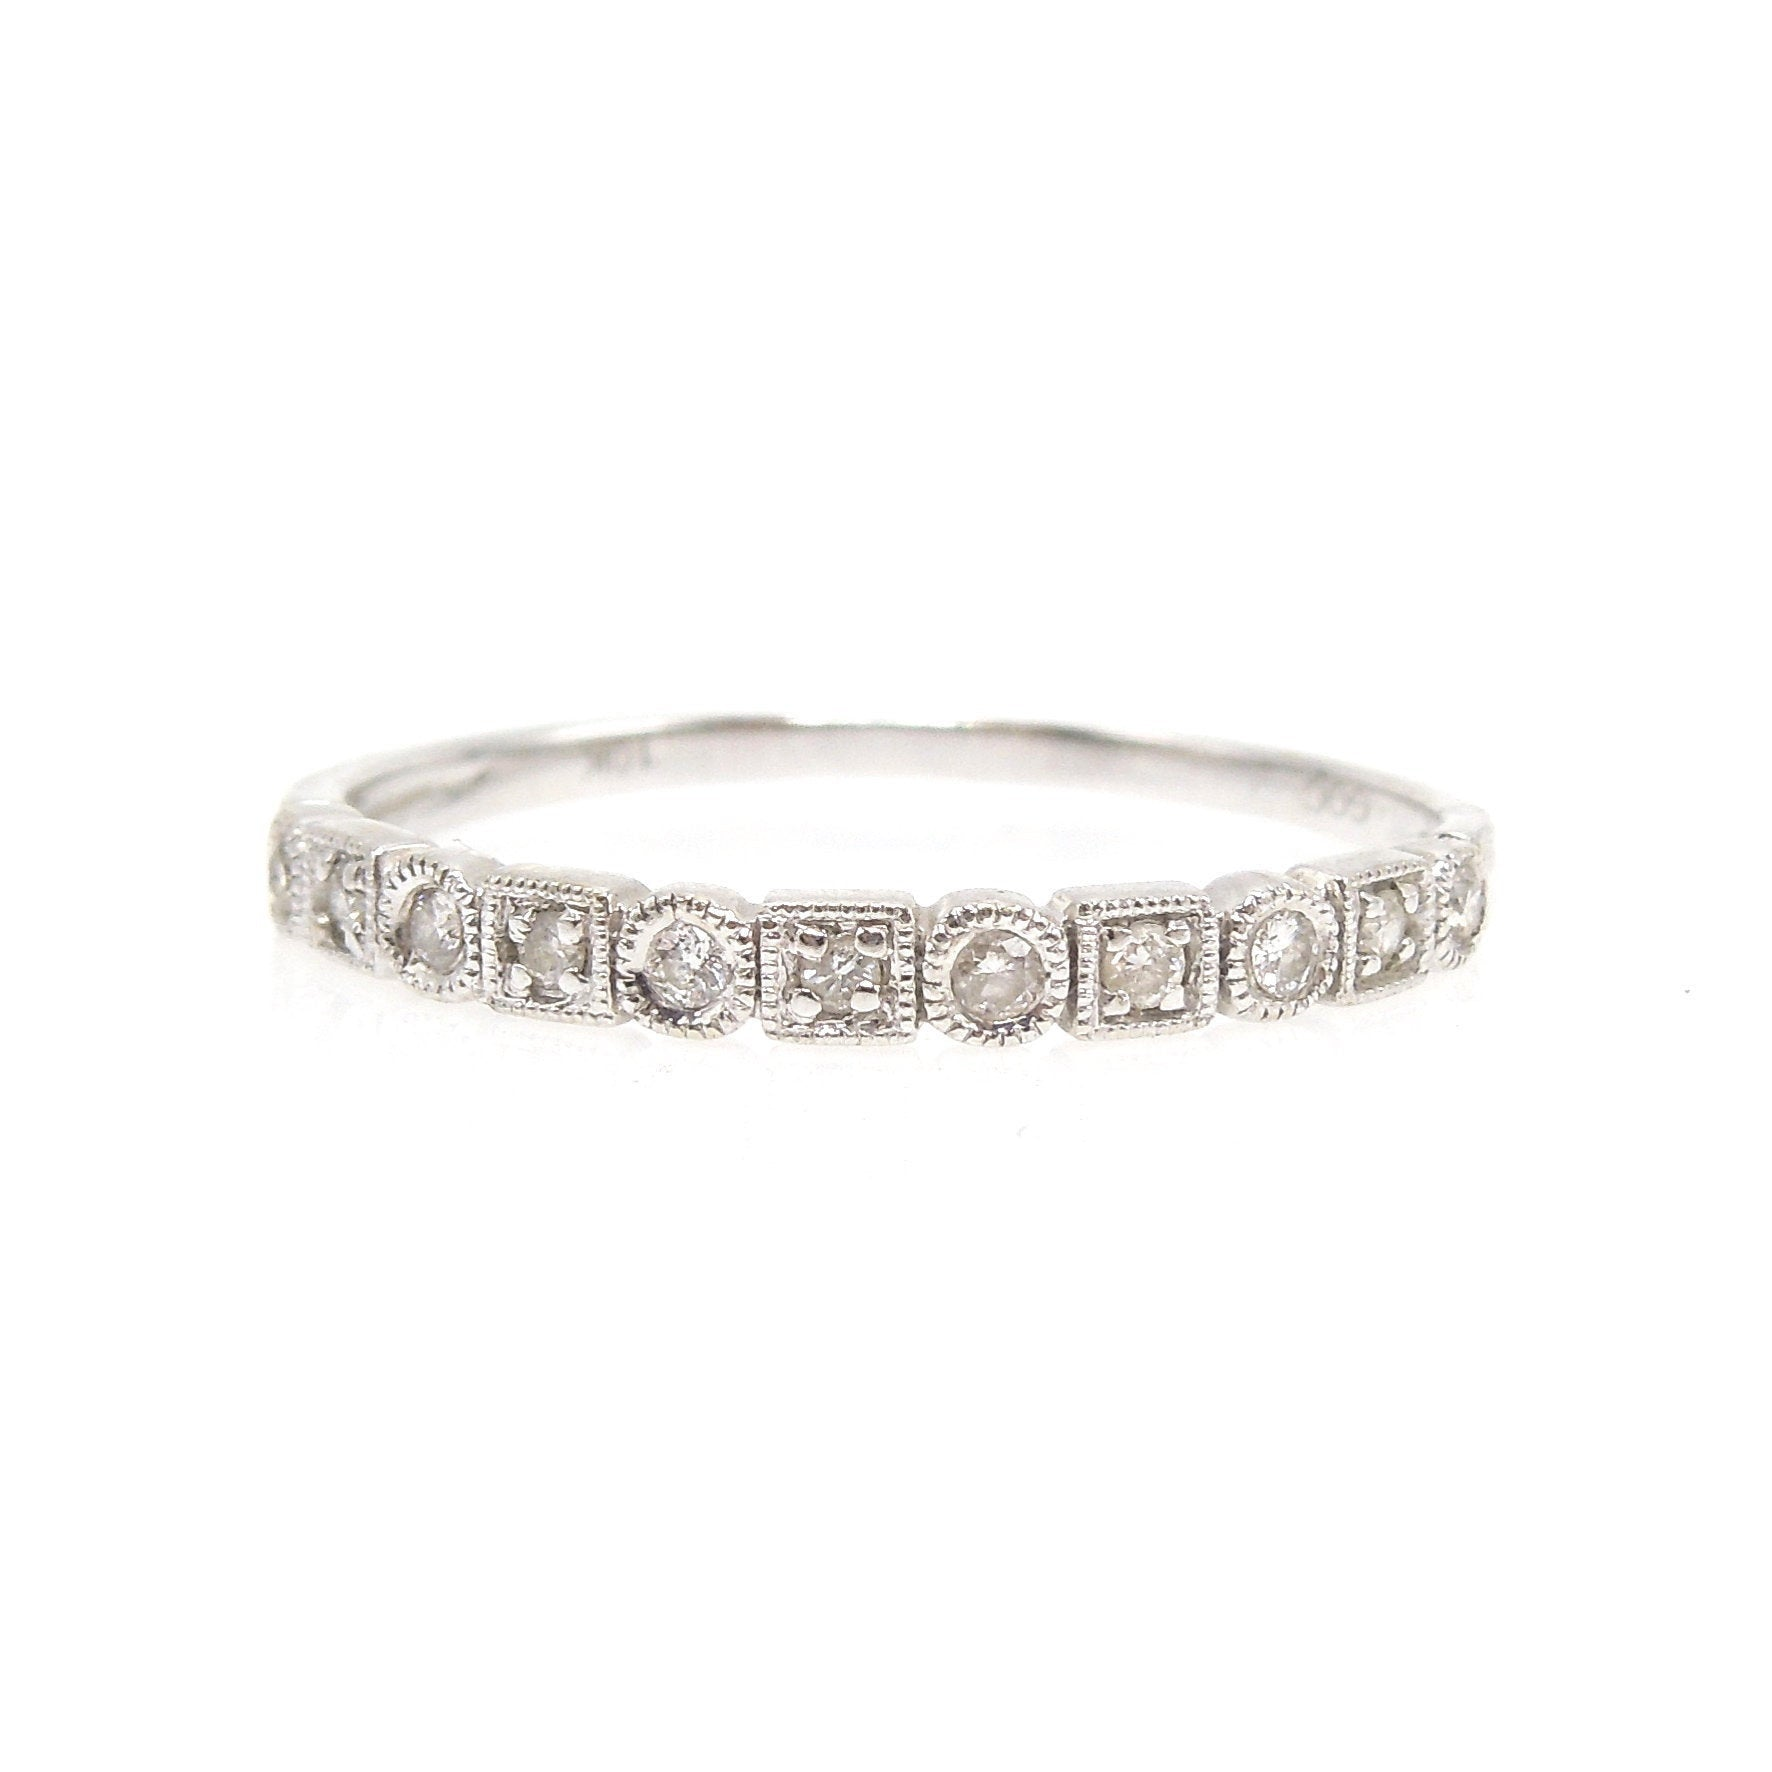 White Gold Alternating Round and Square Bezel Diamond Band